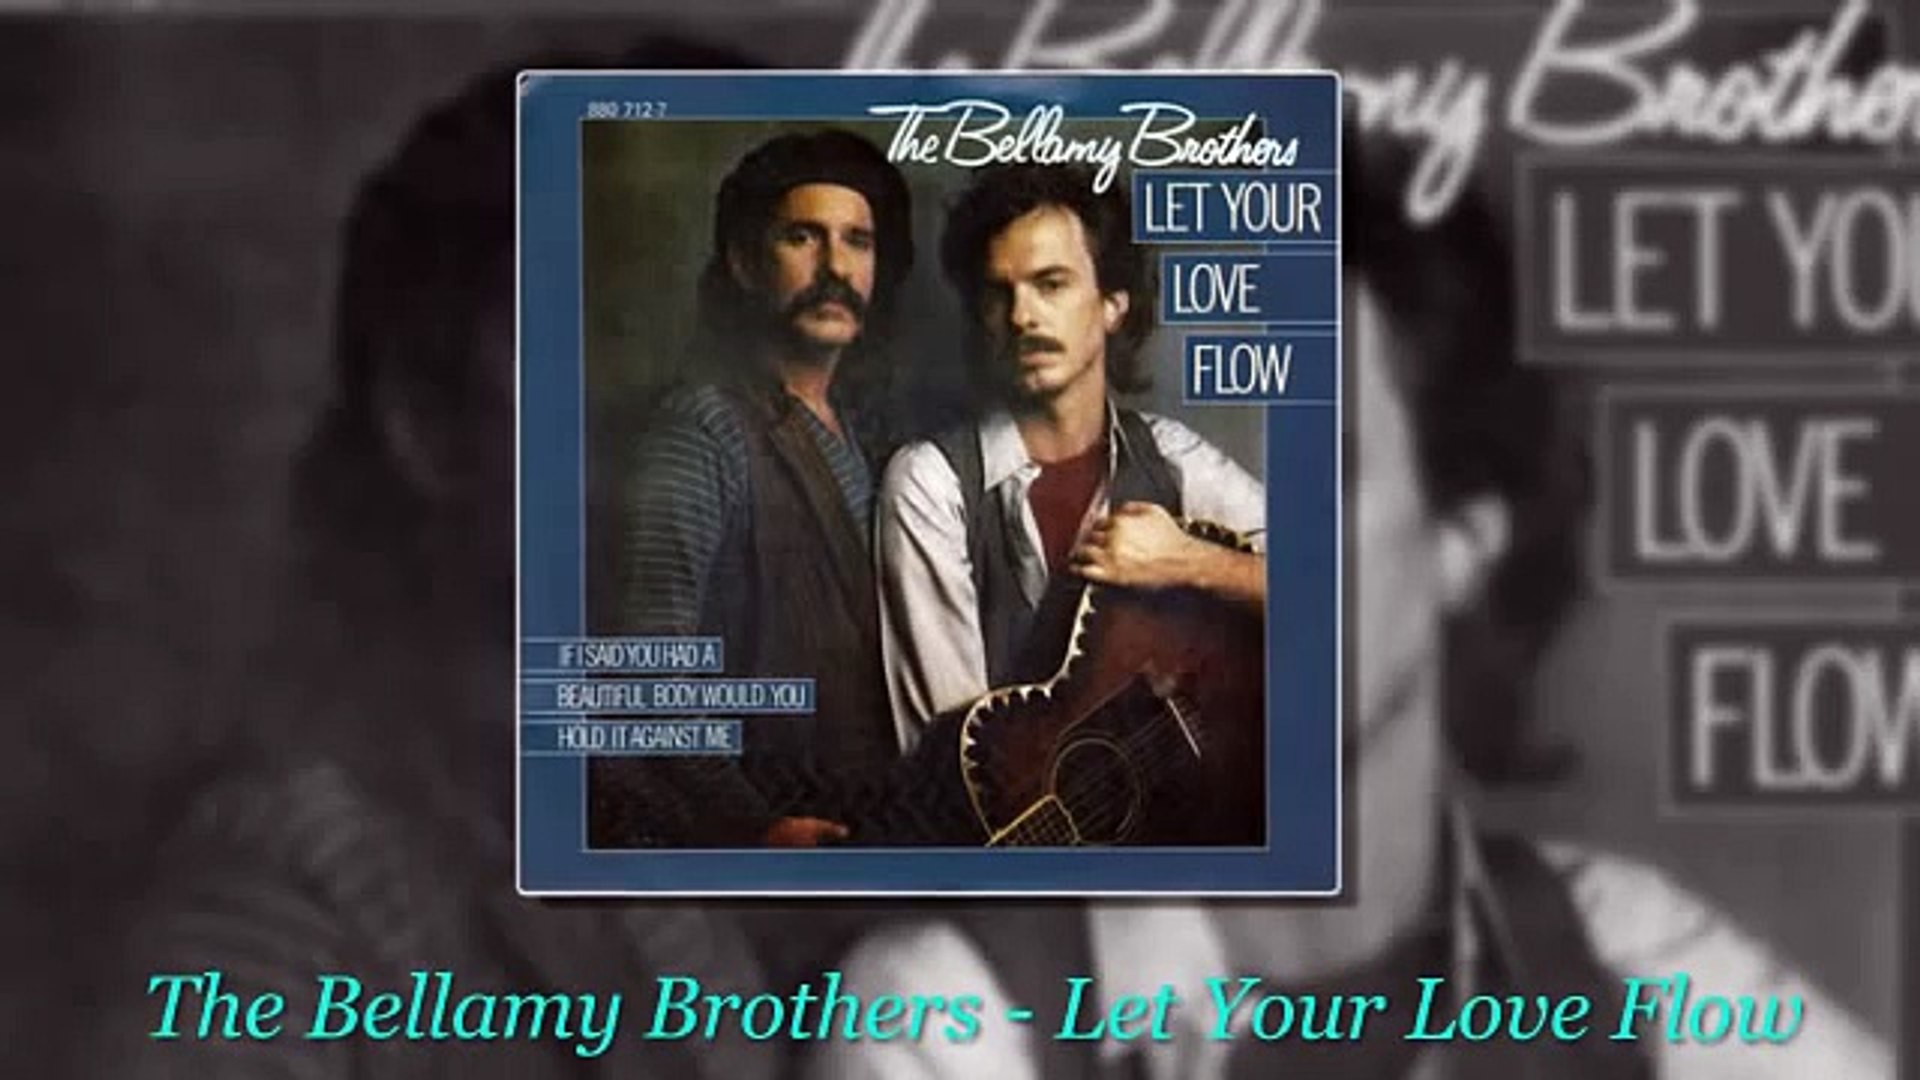 Let Your Love Flow The Bellamy Brothers